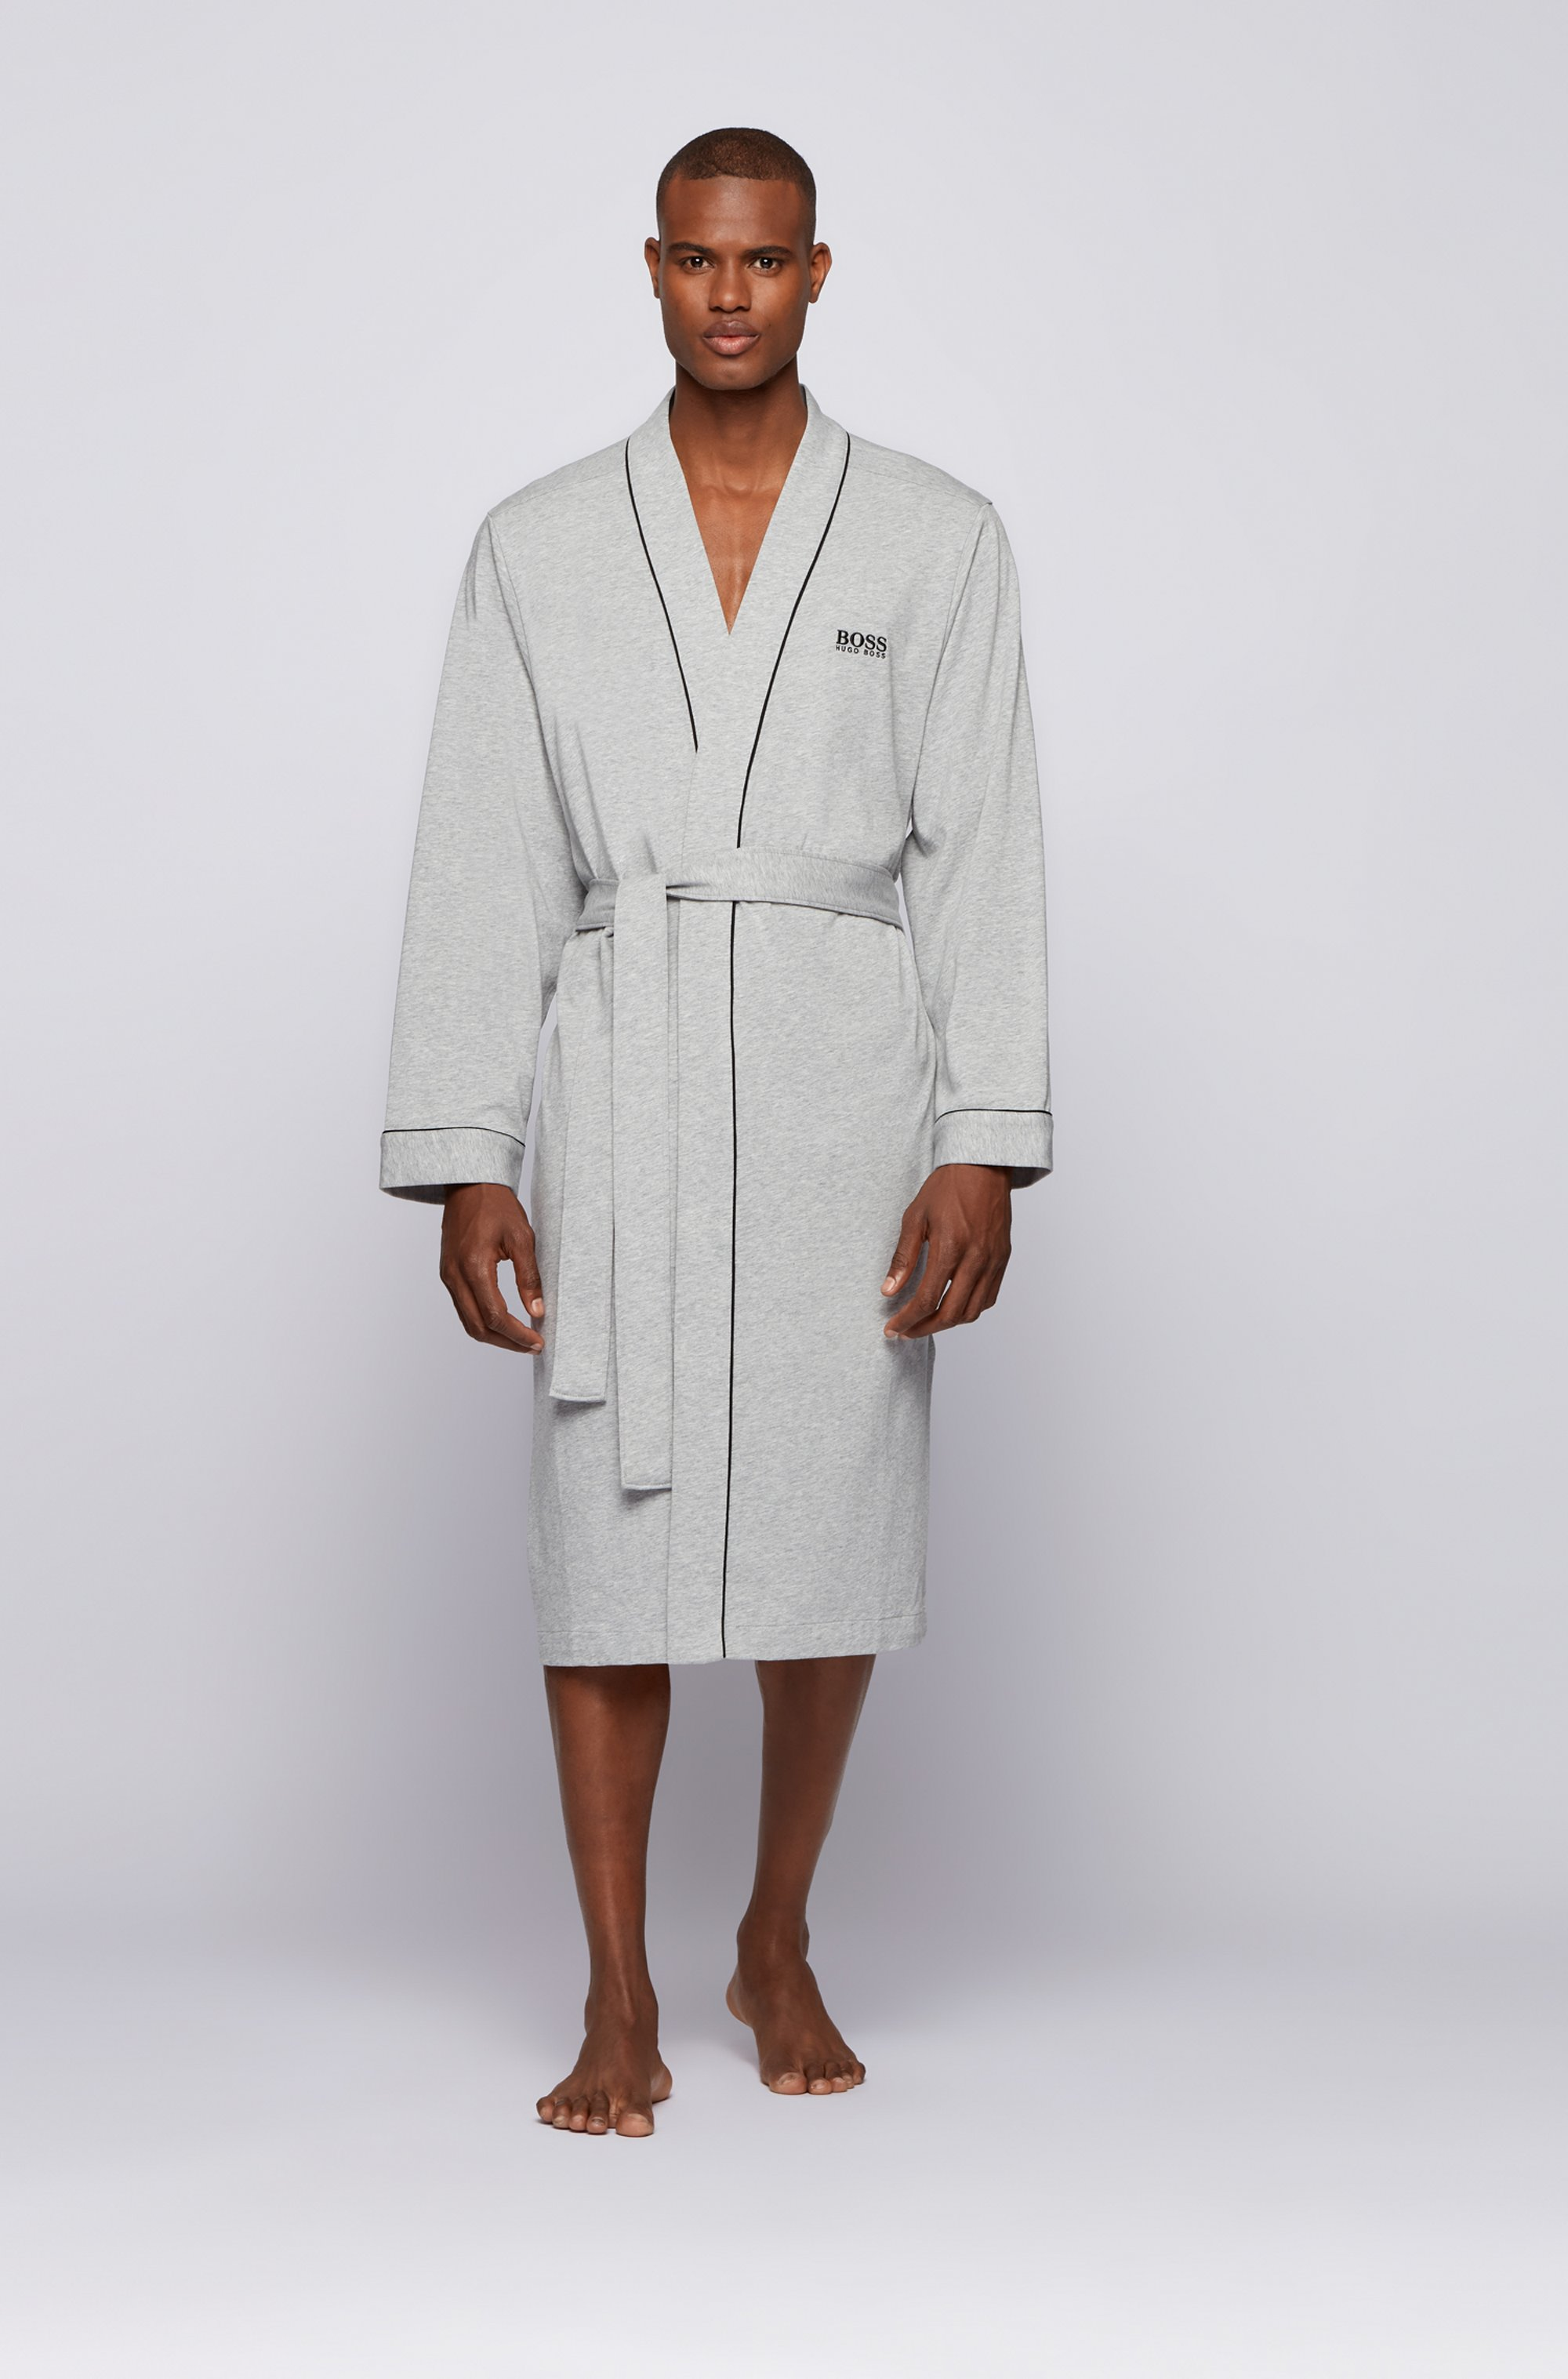 Kimono-style dressing gown in brushed cotton with logo